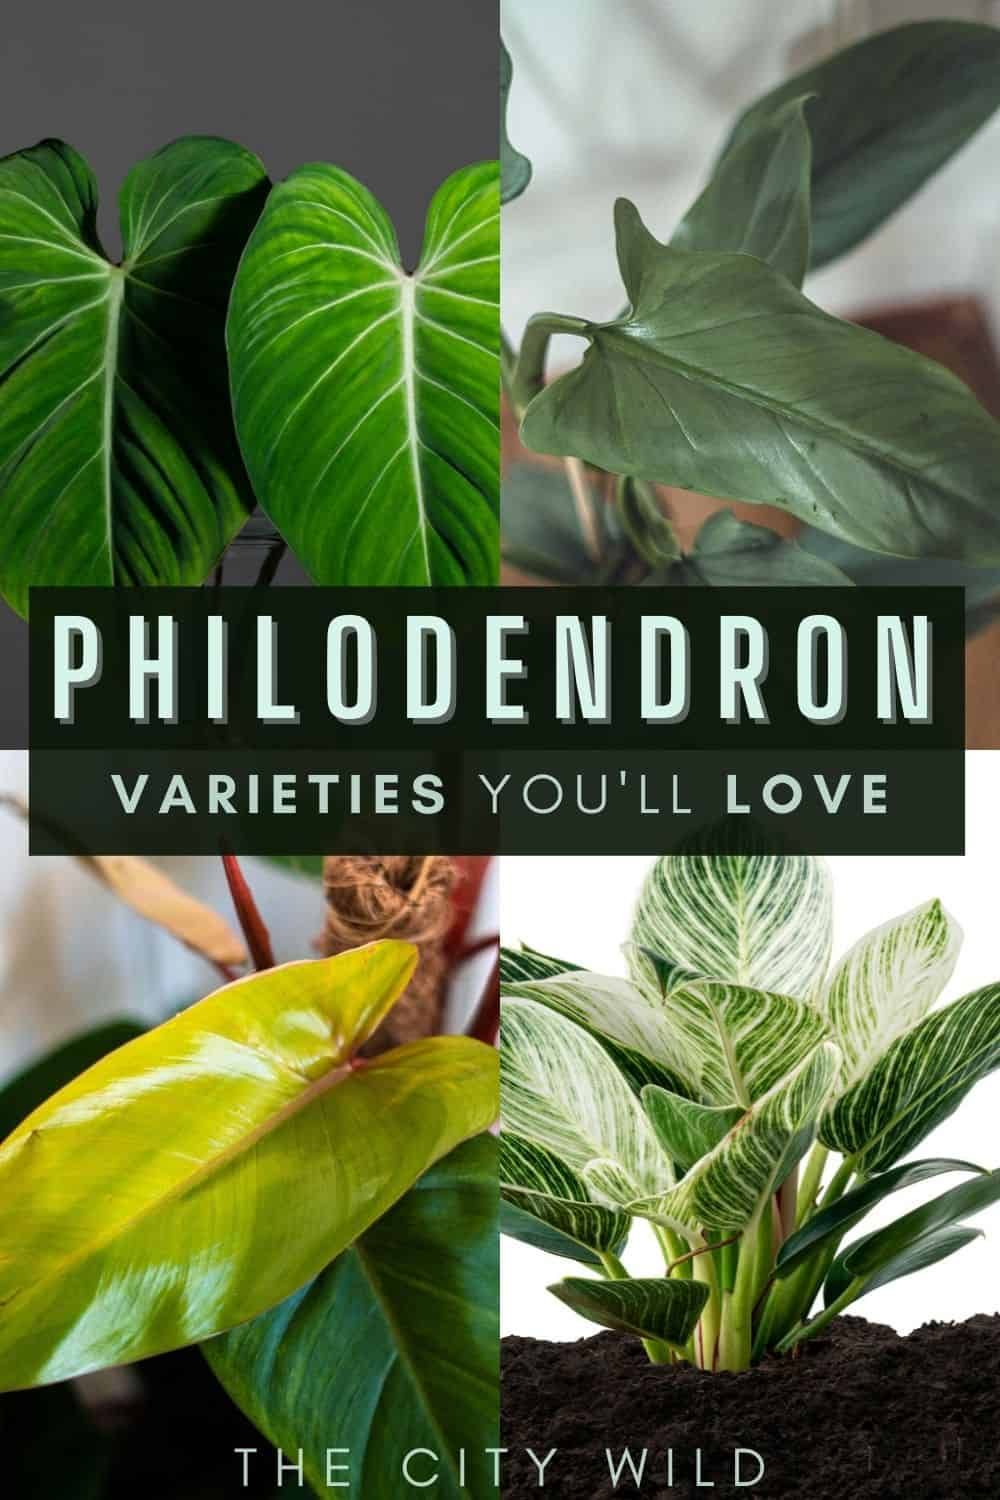 Best philodendron plants/ Beautiful Philodendron Varieties for Your Indoor Garden